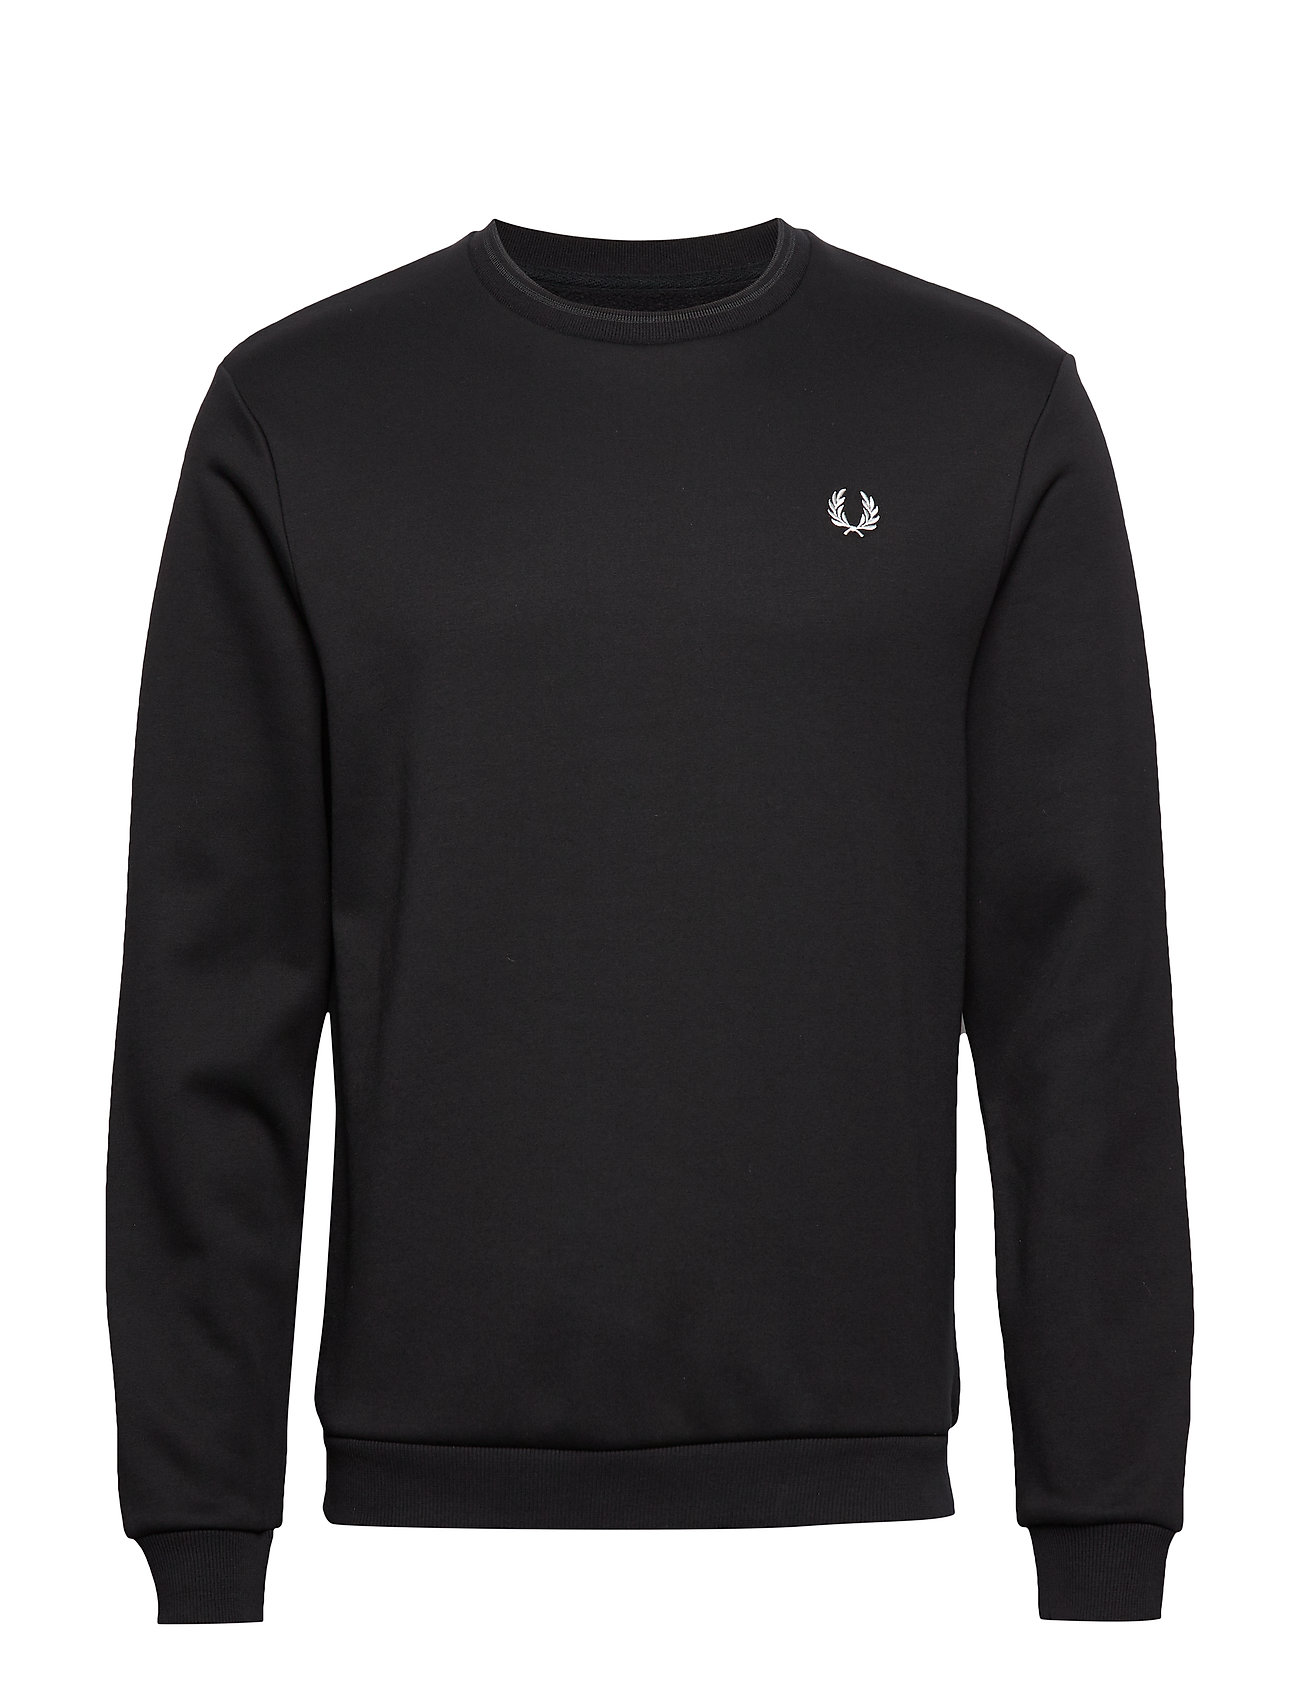 Fred Perry LAUREL WREATH SWEATS. - BLACK